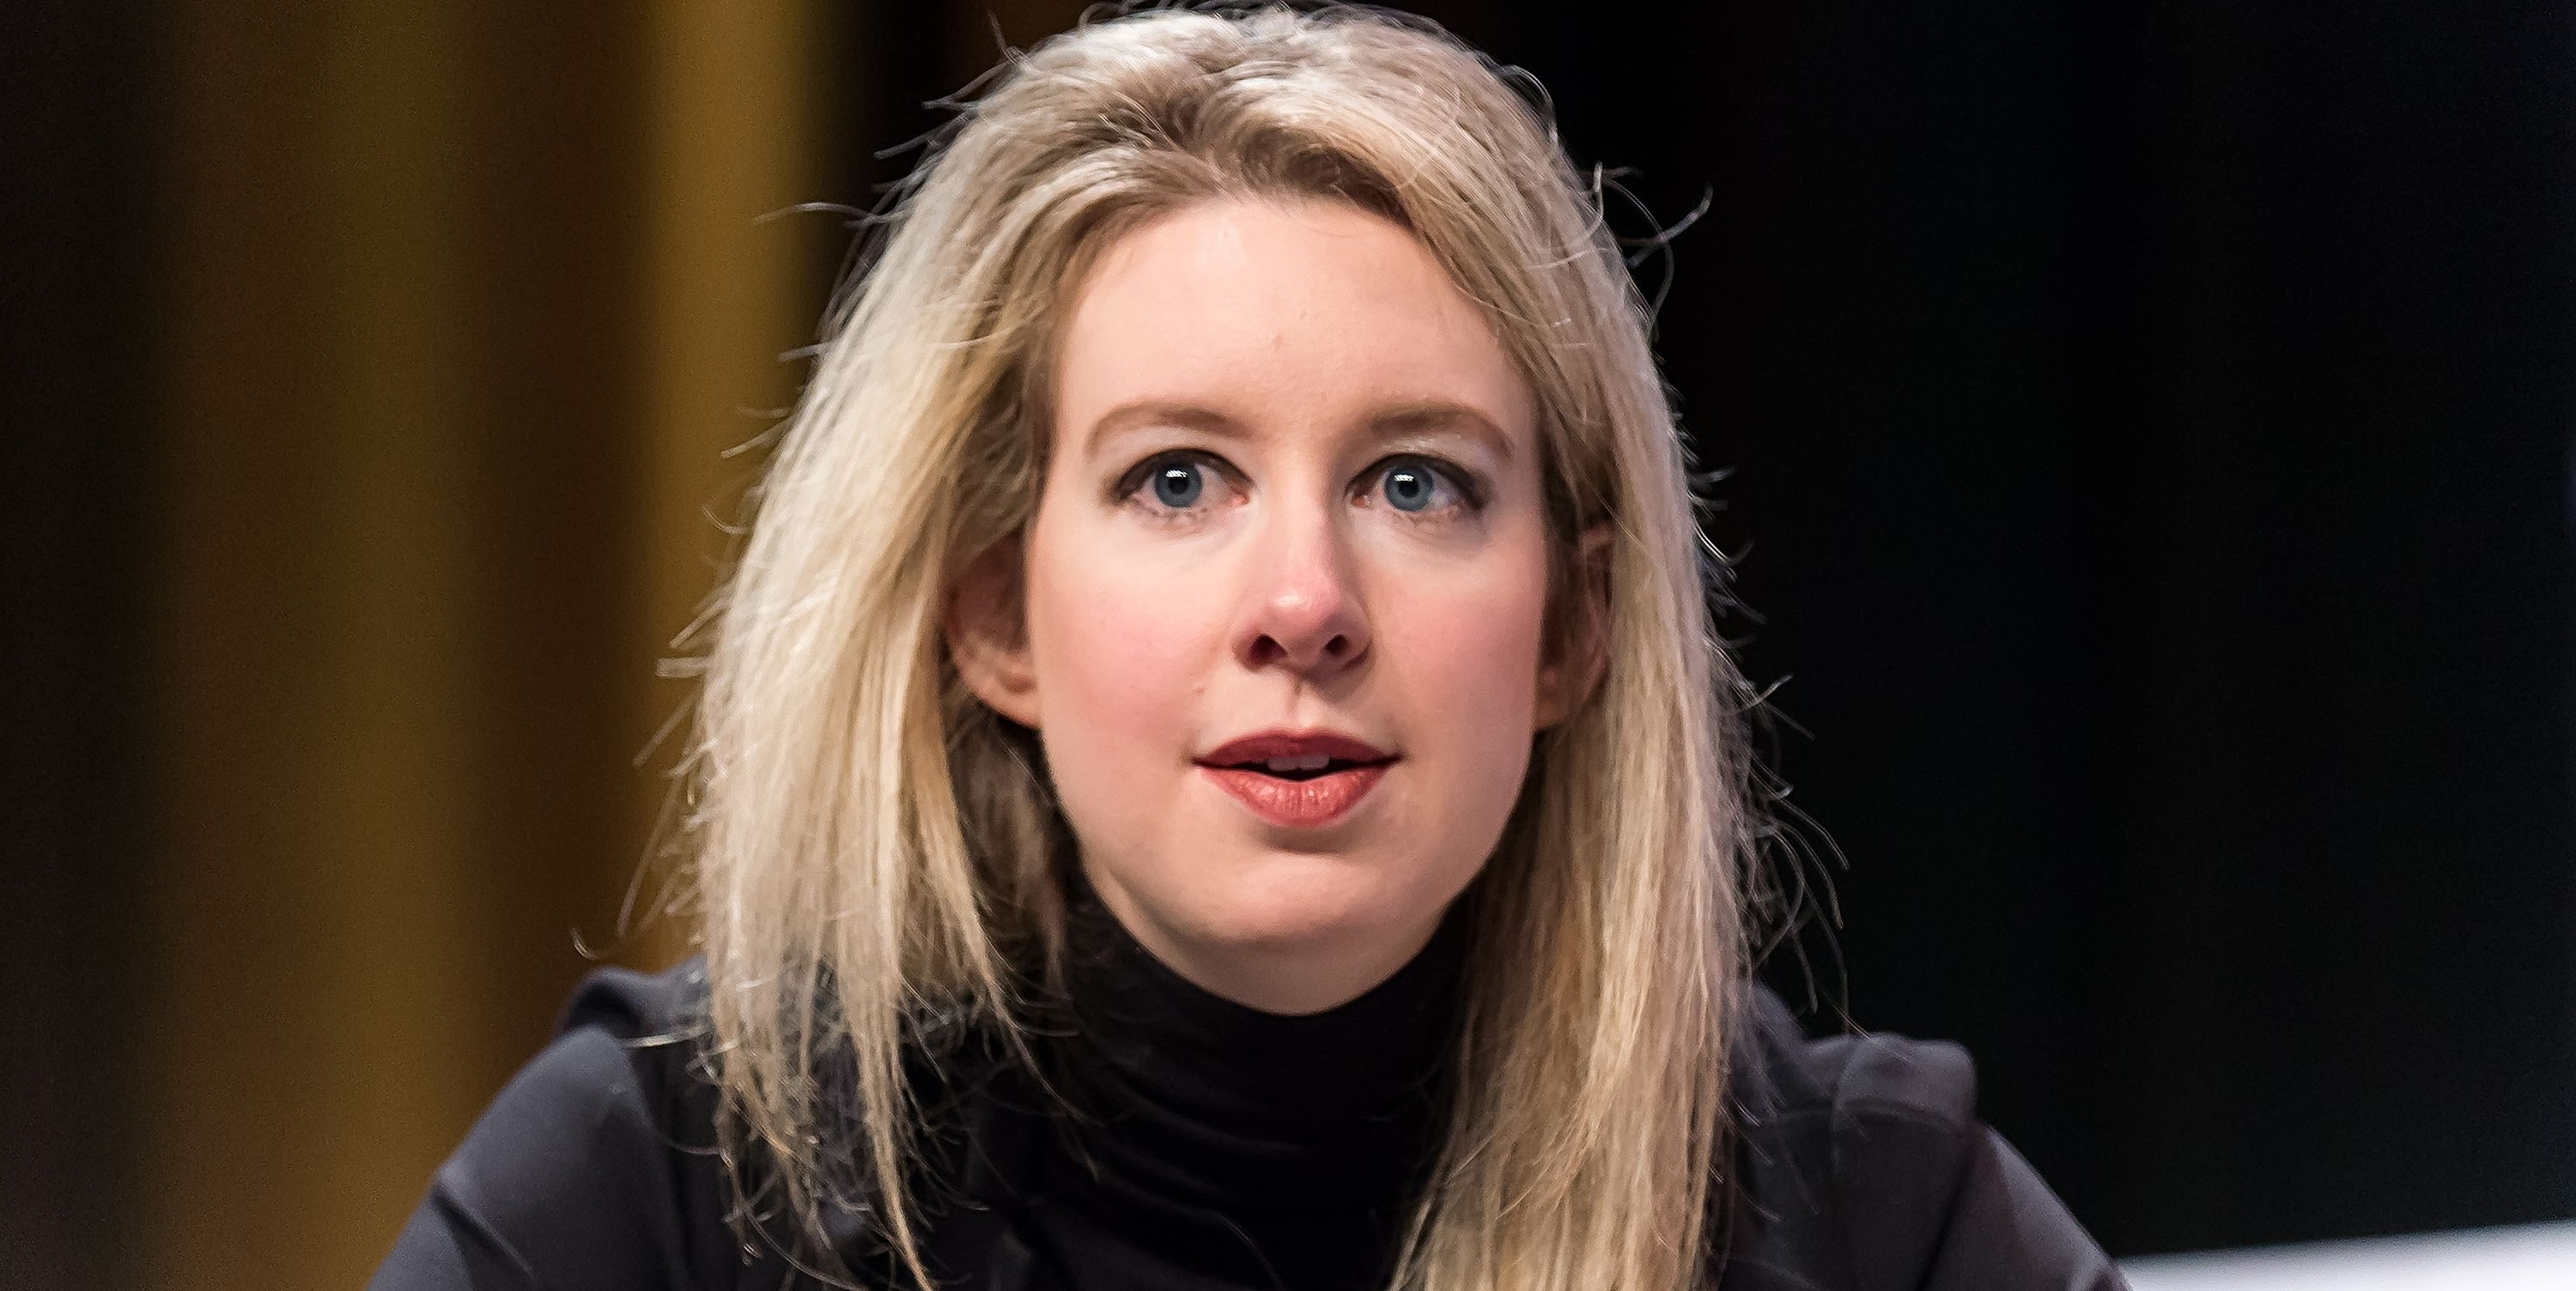 Everything You Need to Know About Elizabeth Holmes' Alleged Crimes